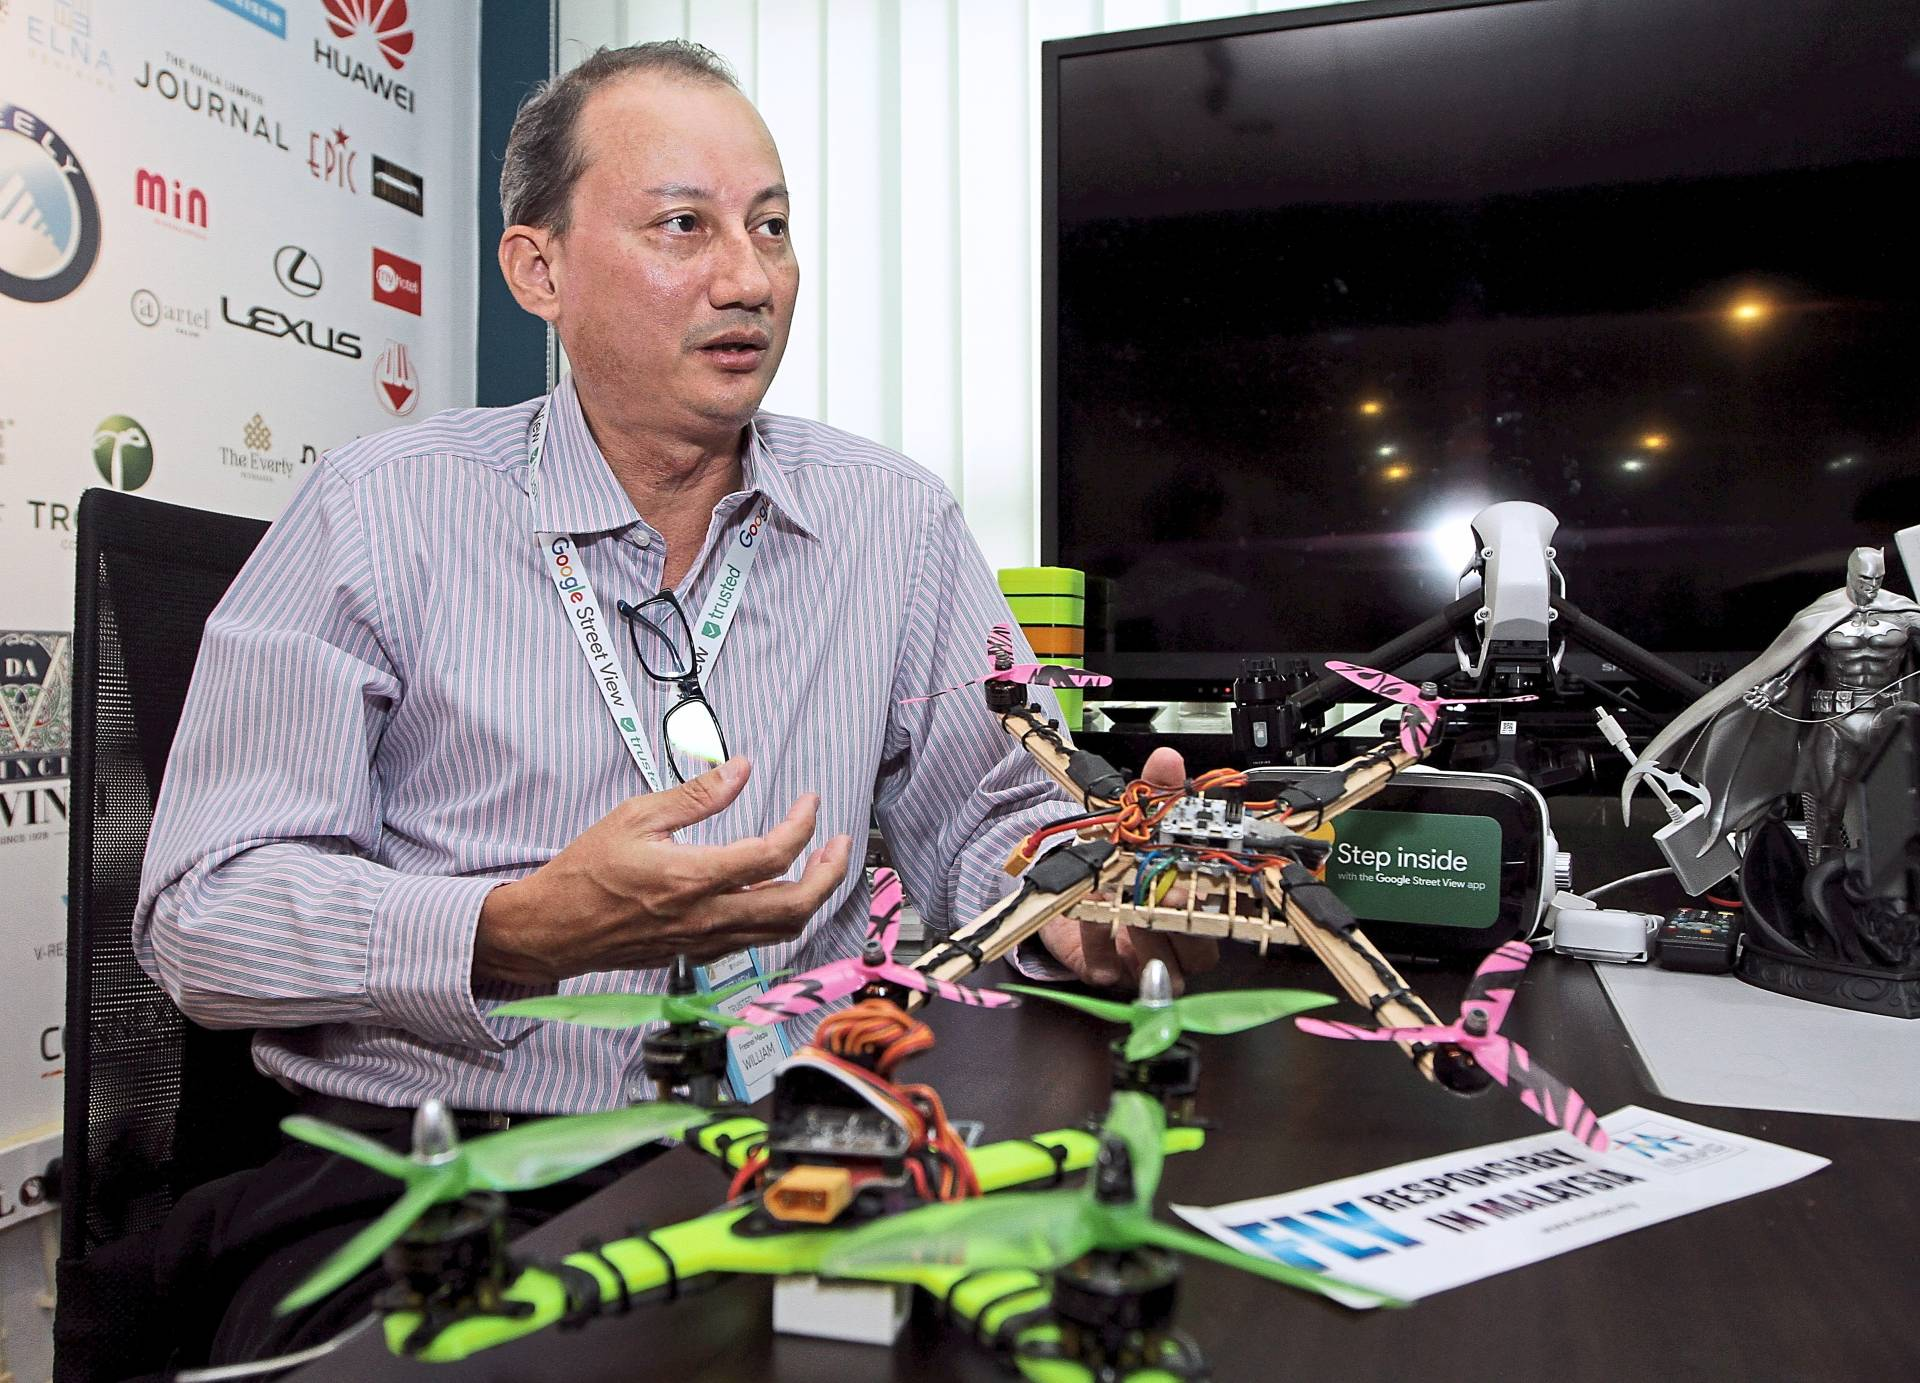 'Time to update drone laws'